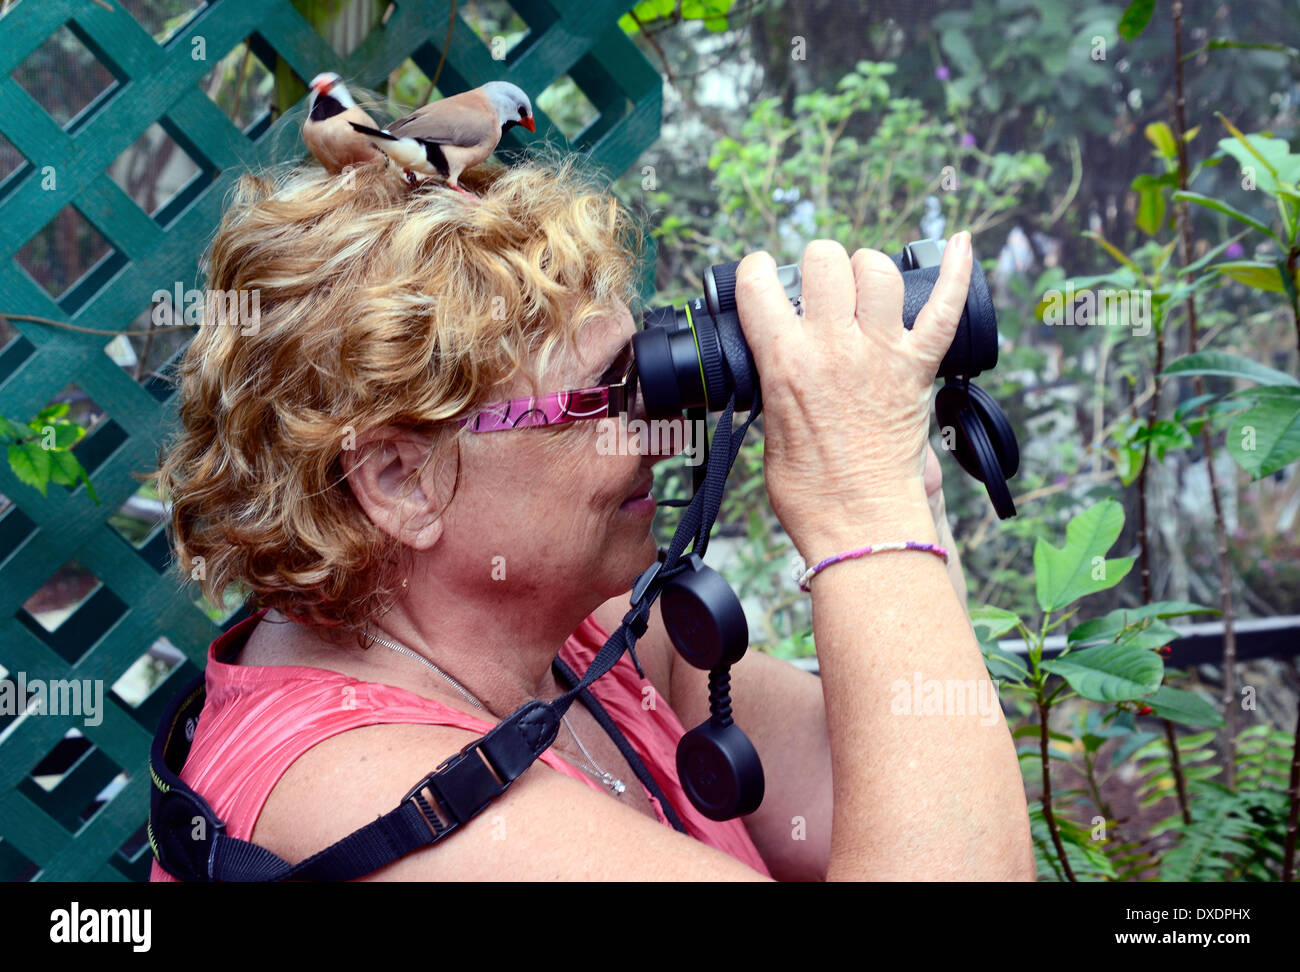 birds land on a woman's head in an aviary, she is unaware! - Stock Image